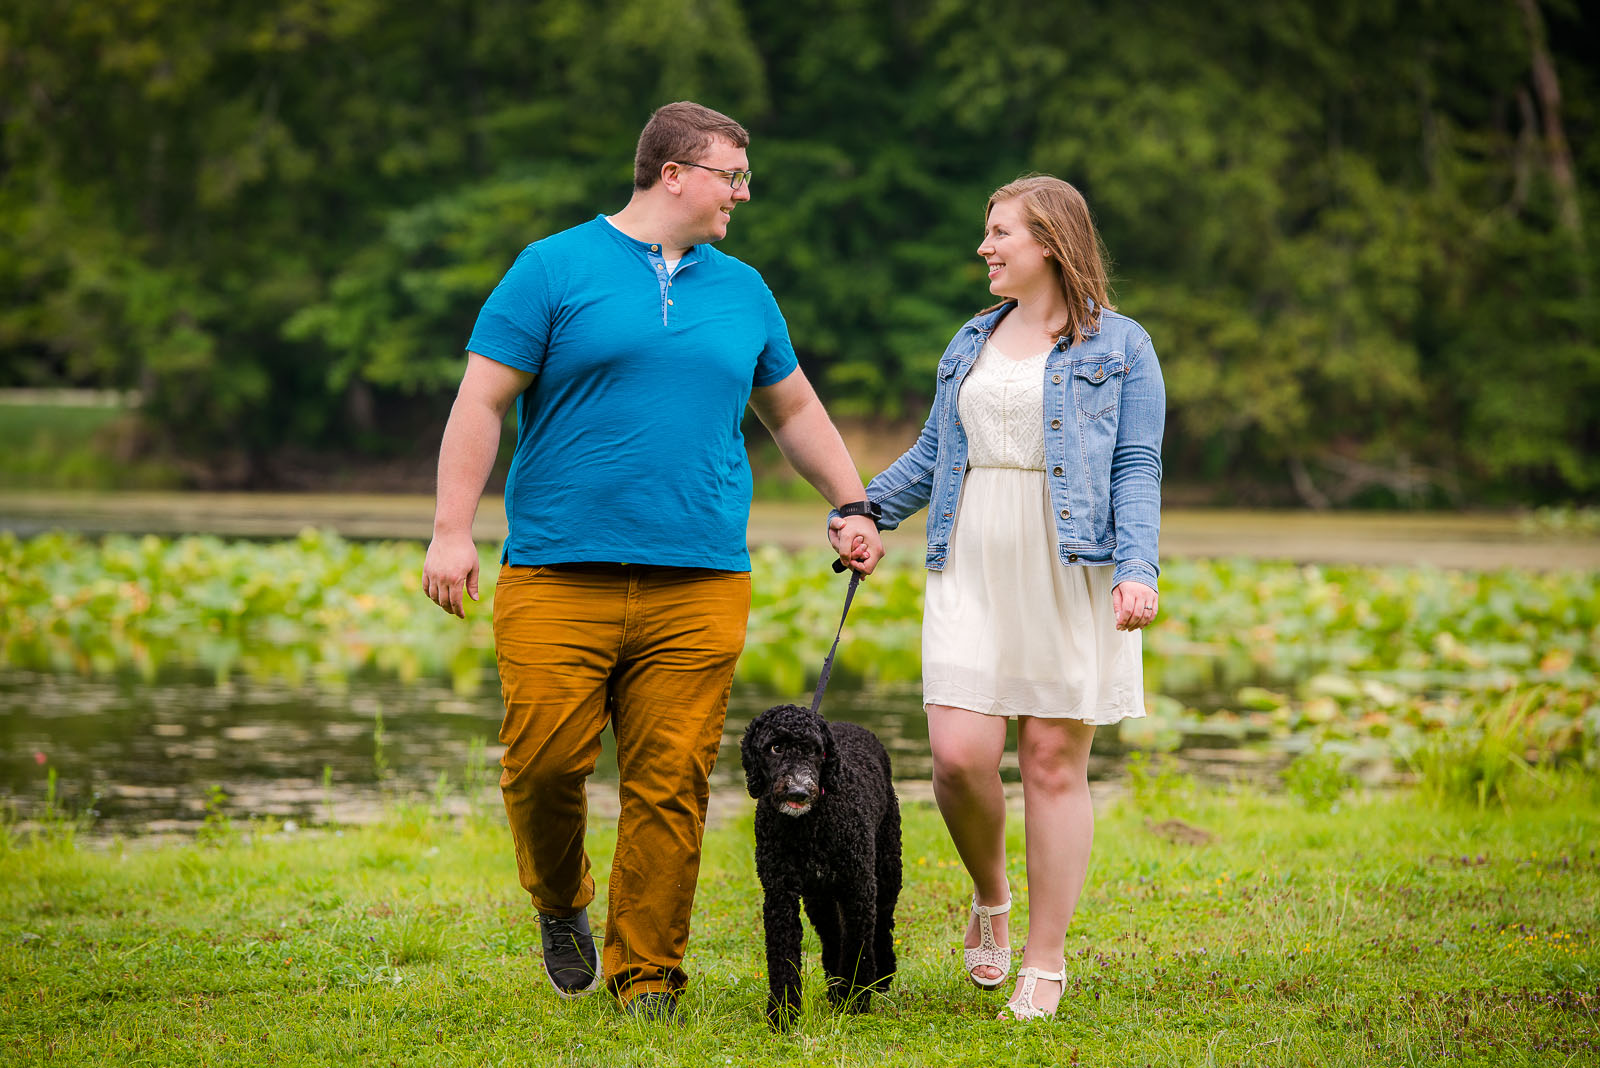 Eric_and_Christy_Photography_Blog_Karen_Nick-6